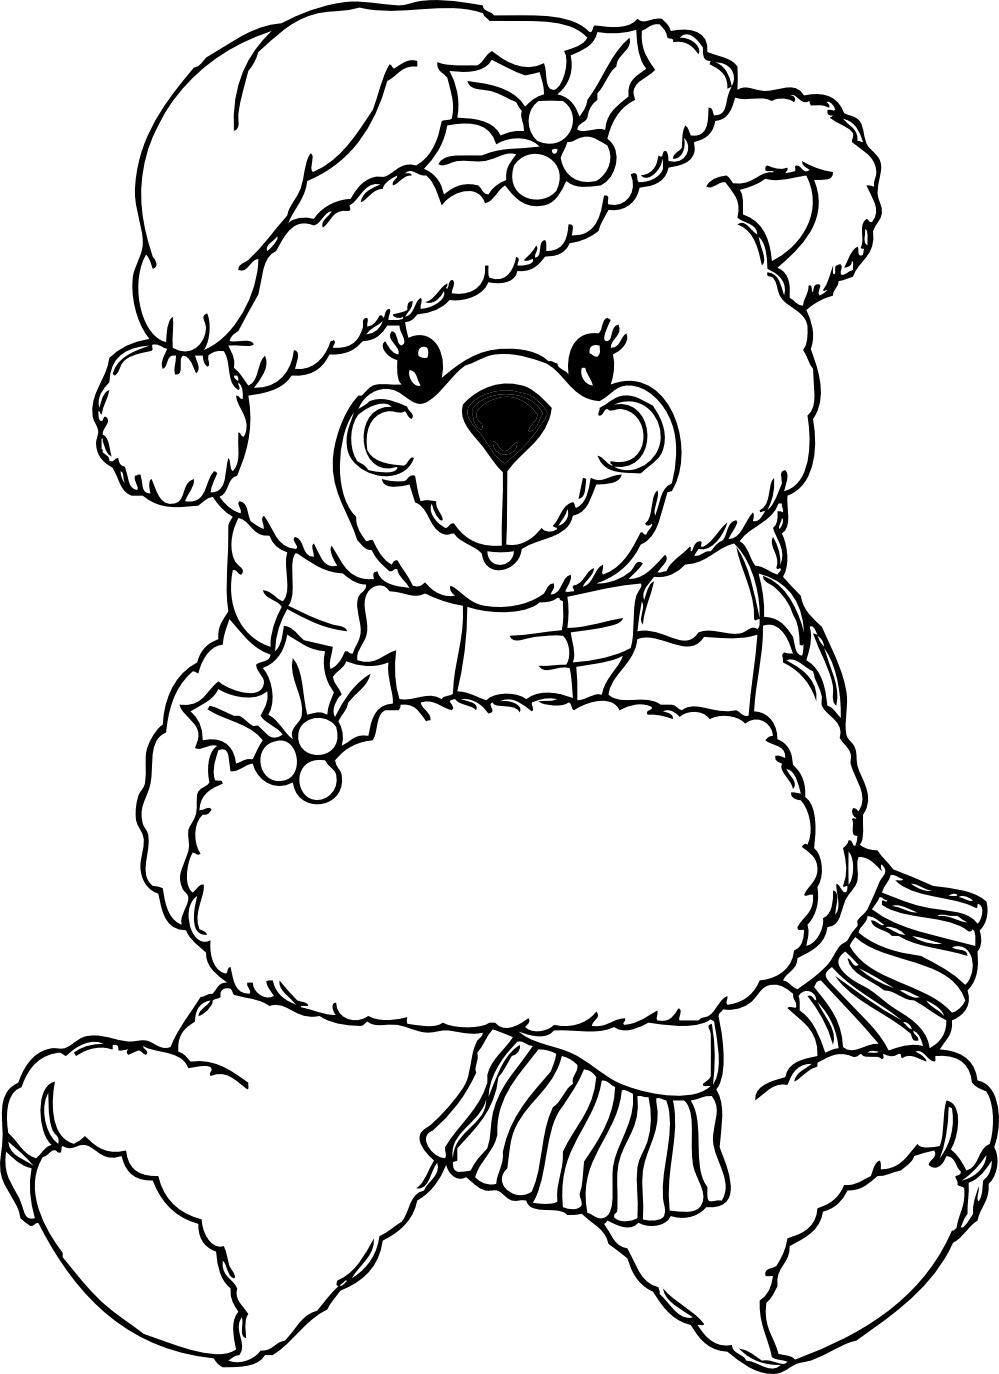 Teddy clipart coloring #9